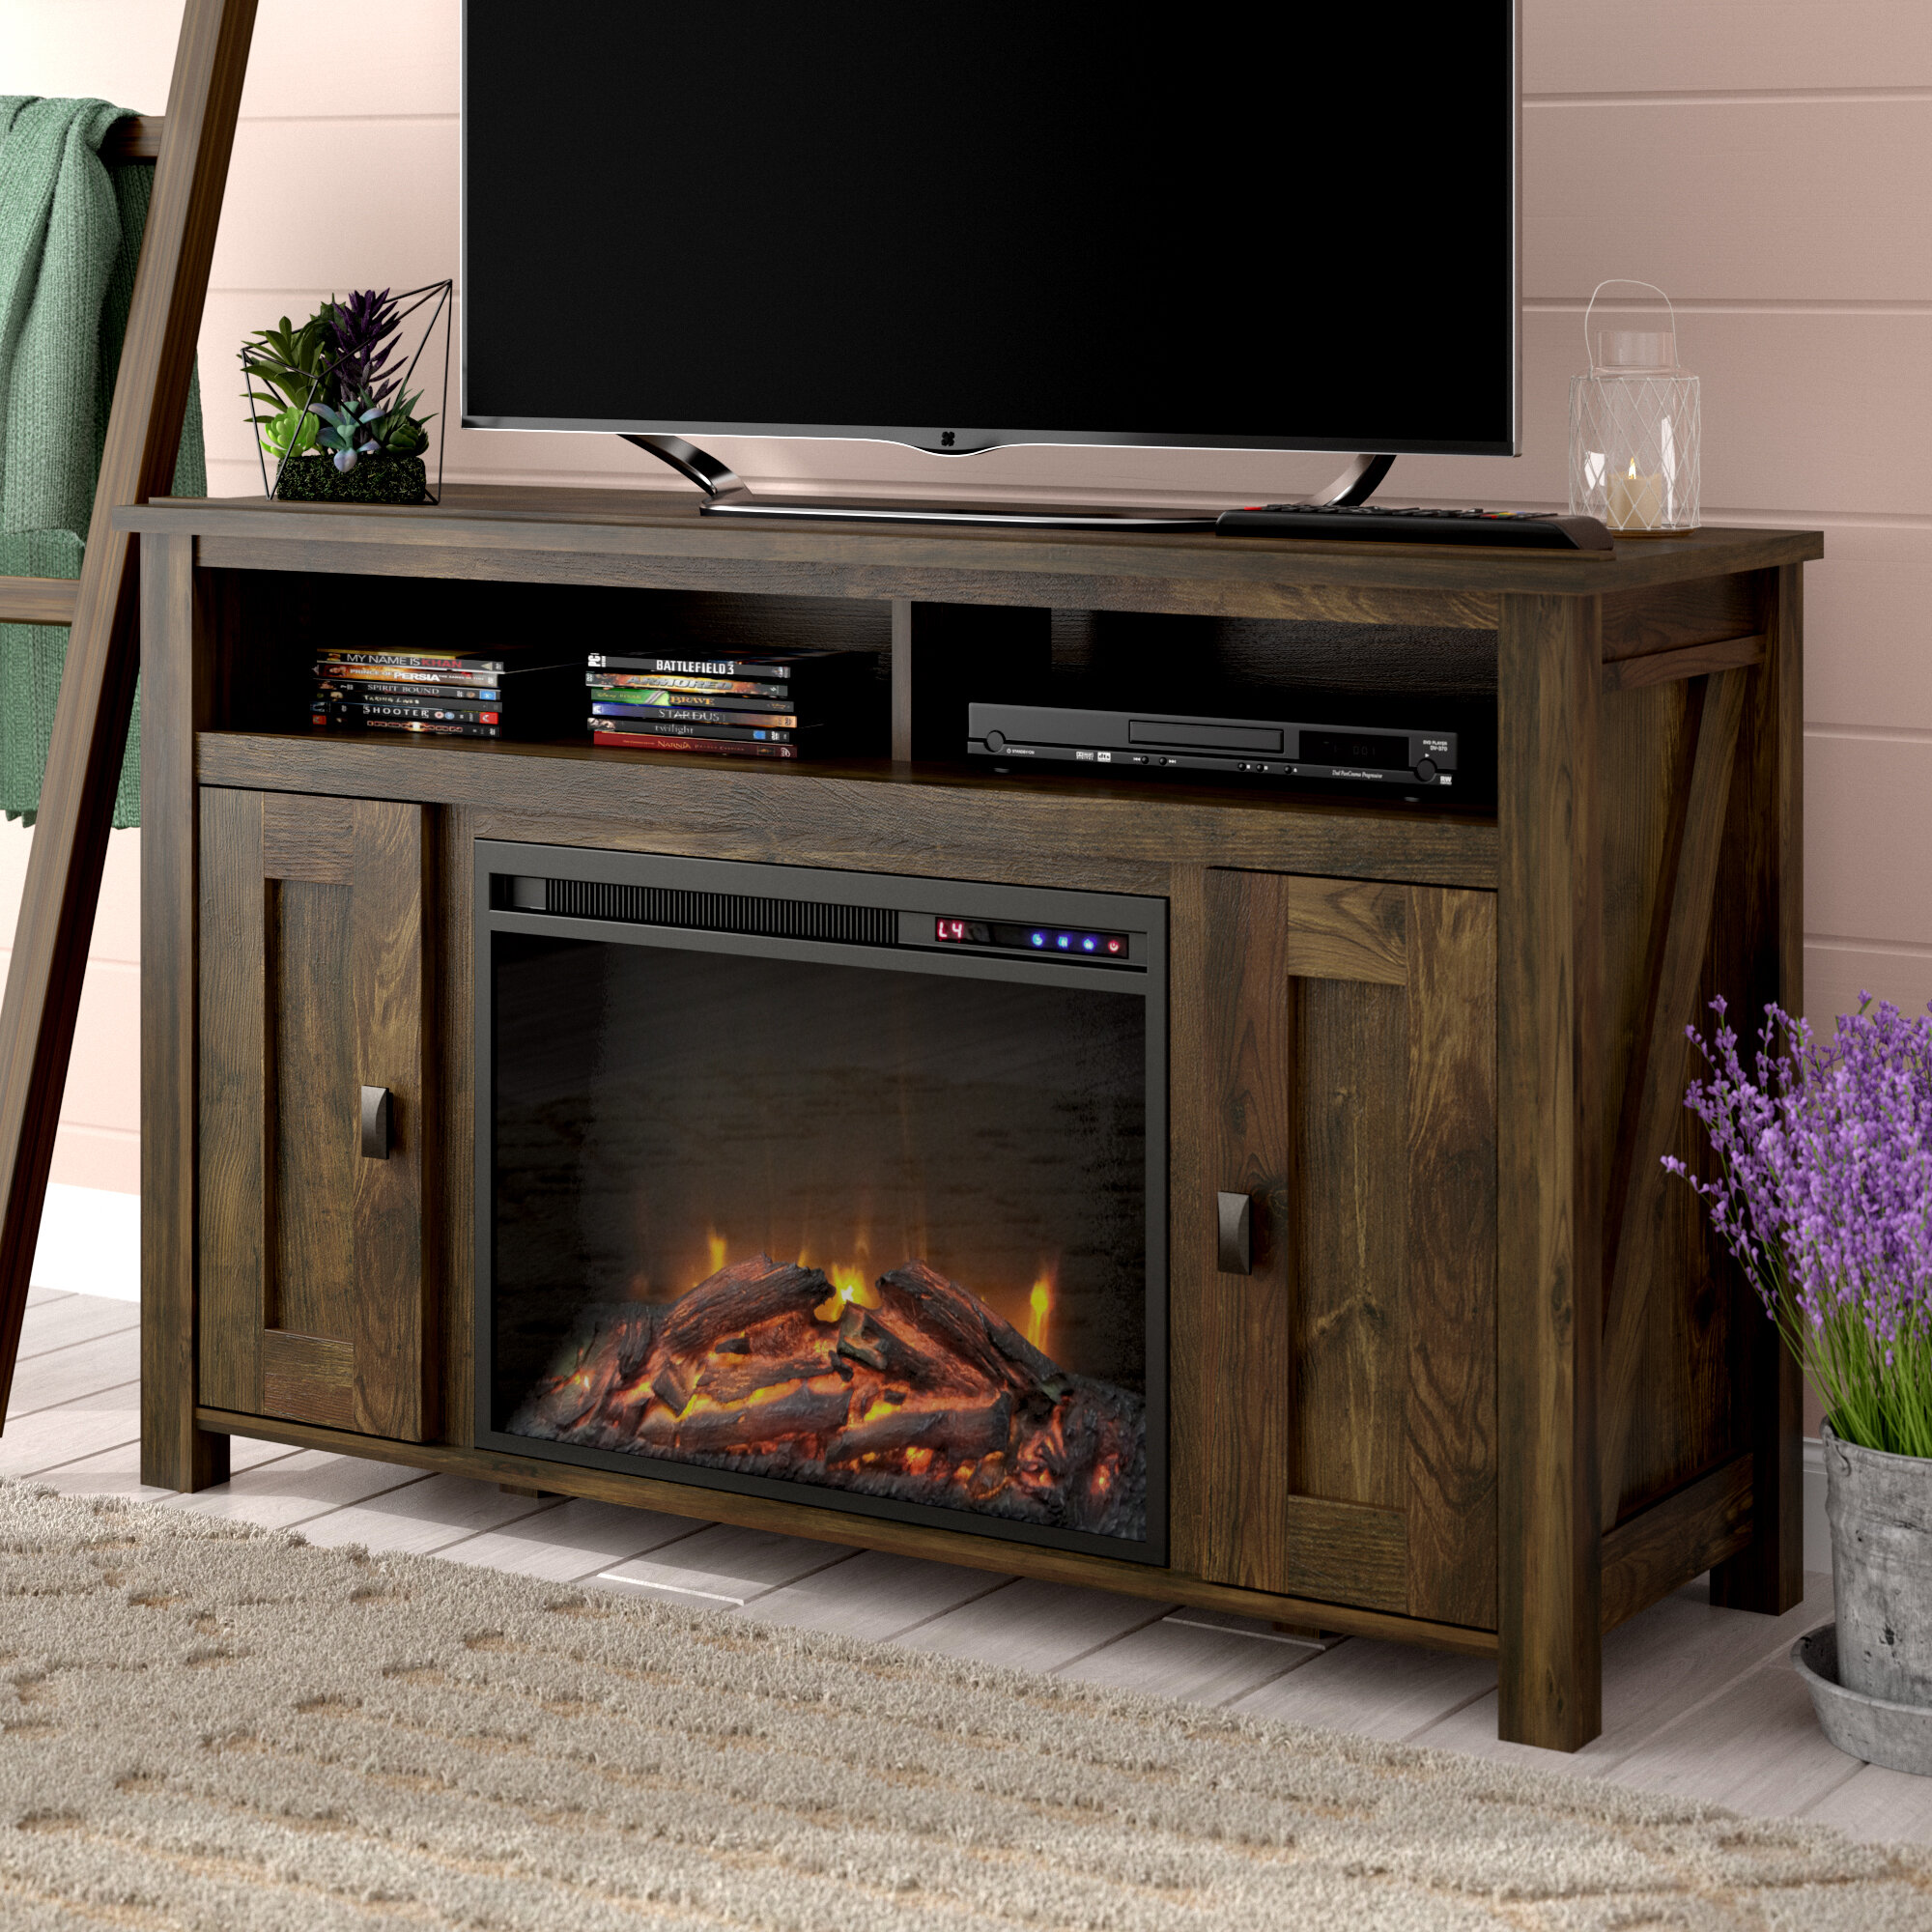 Whittier Tv Stand For Tvs Up To 50 With Fireplace